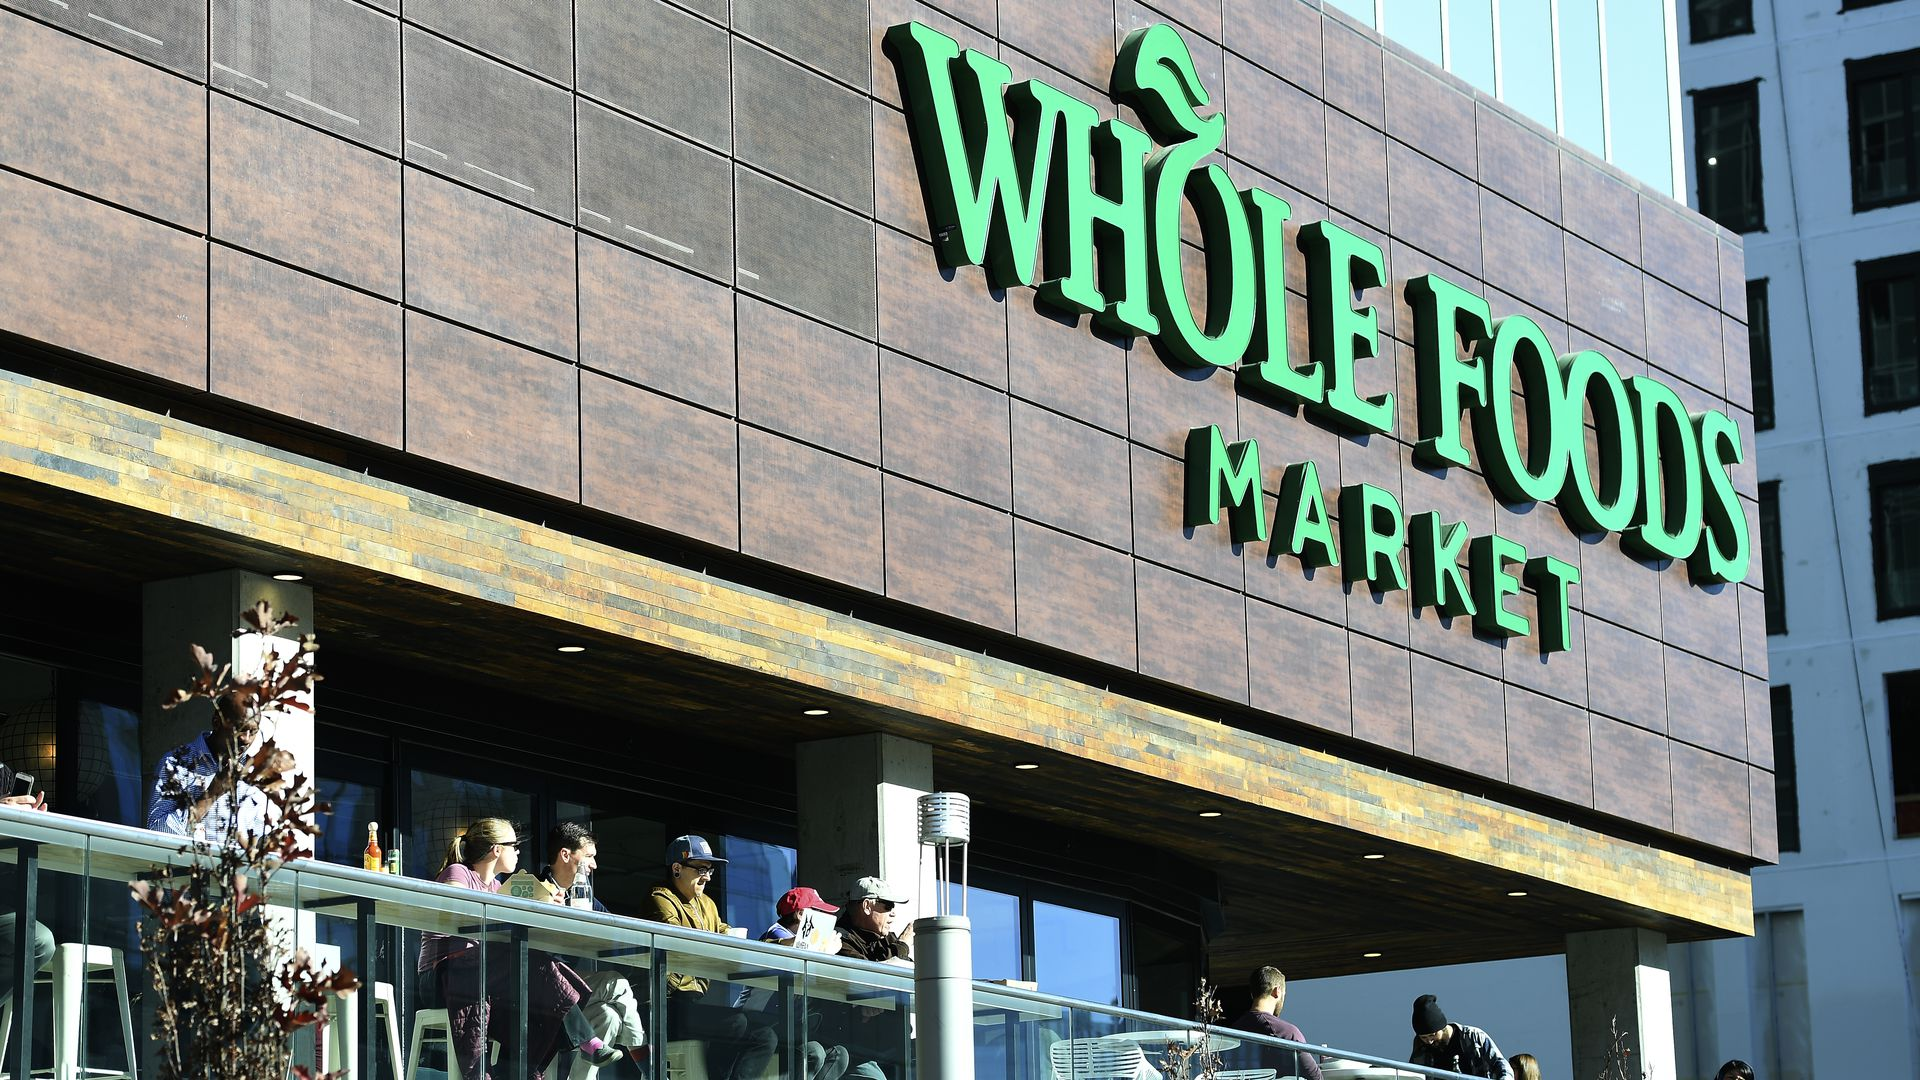 A Whole Foods store in downtown Denver, Colorado.